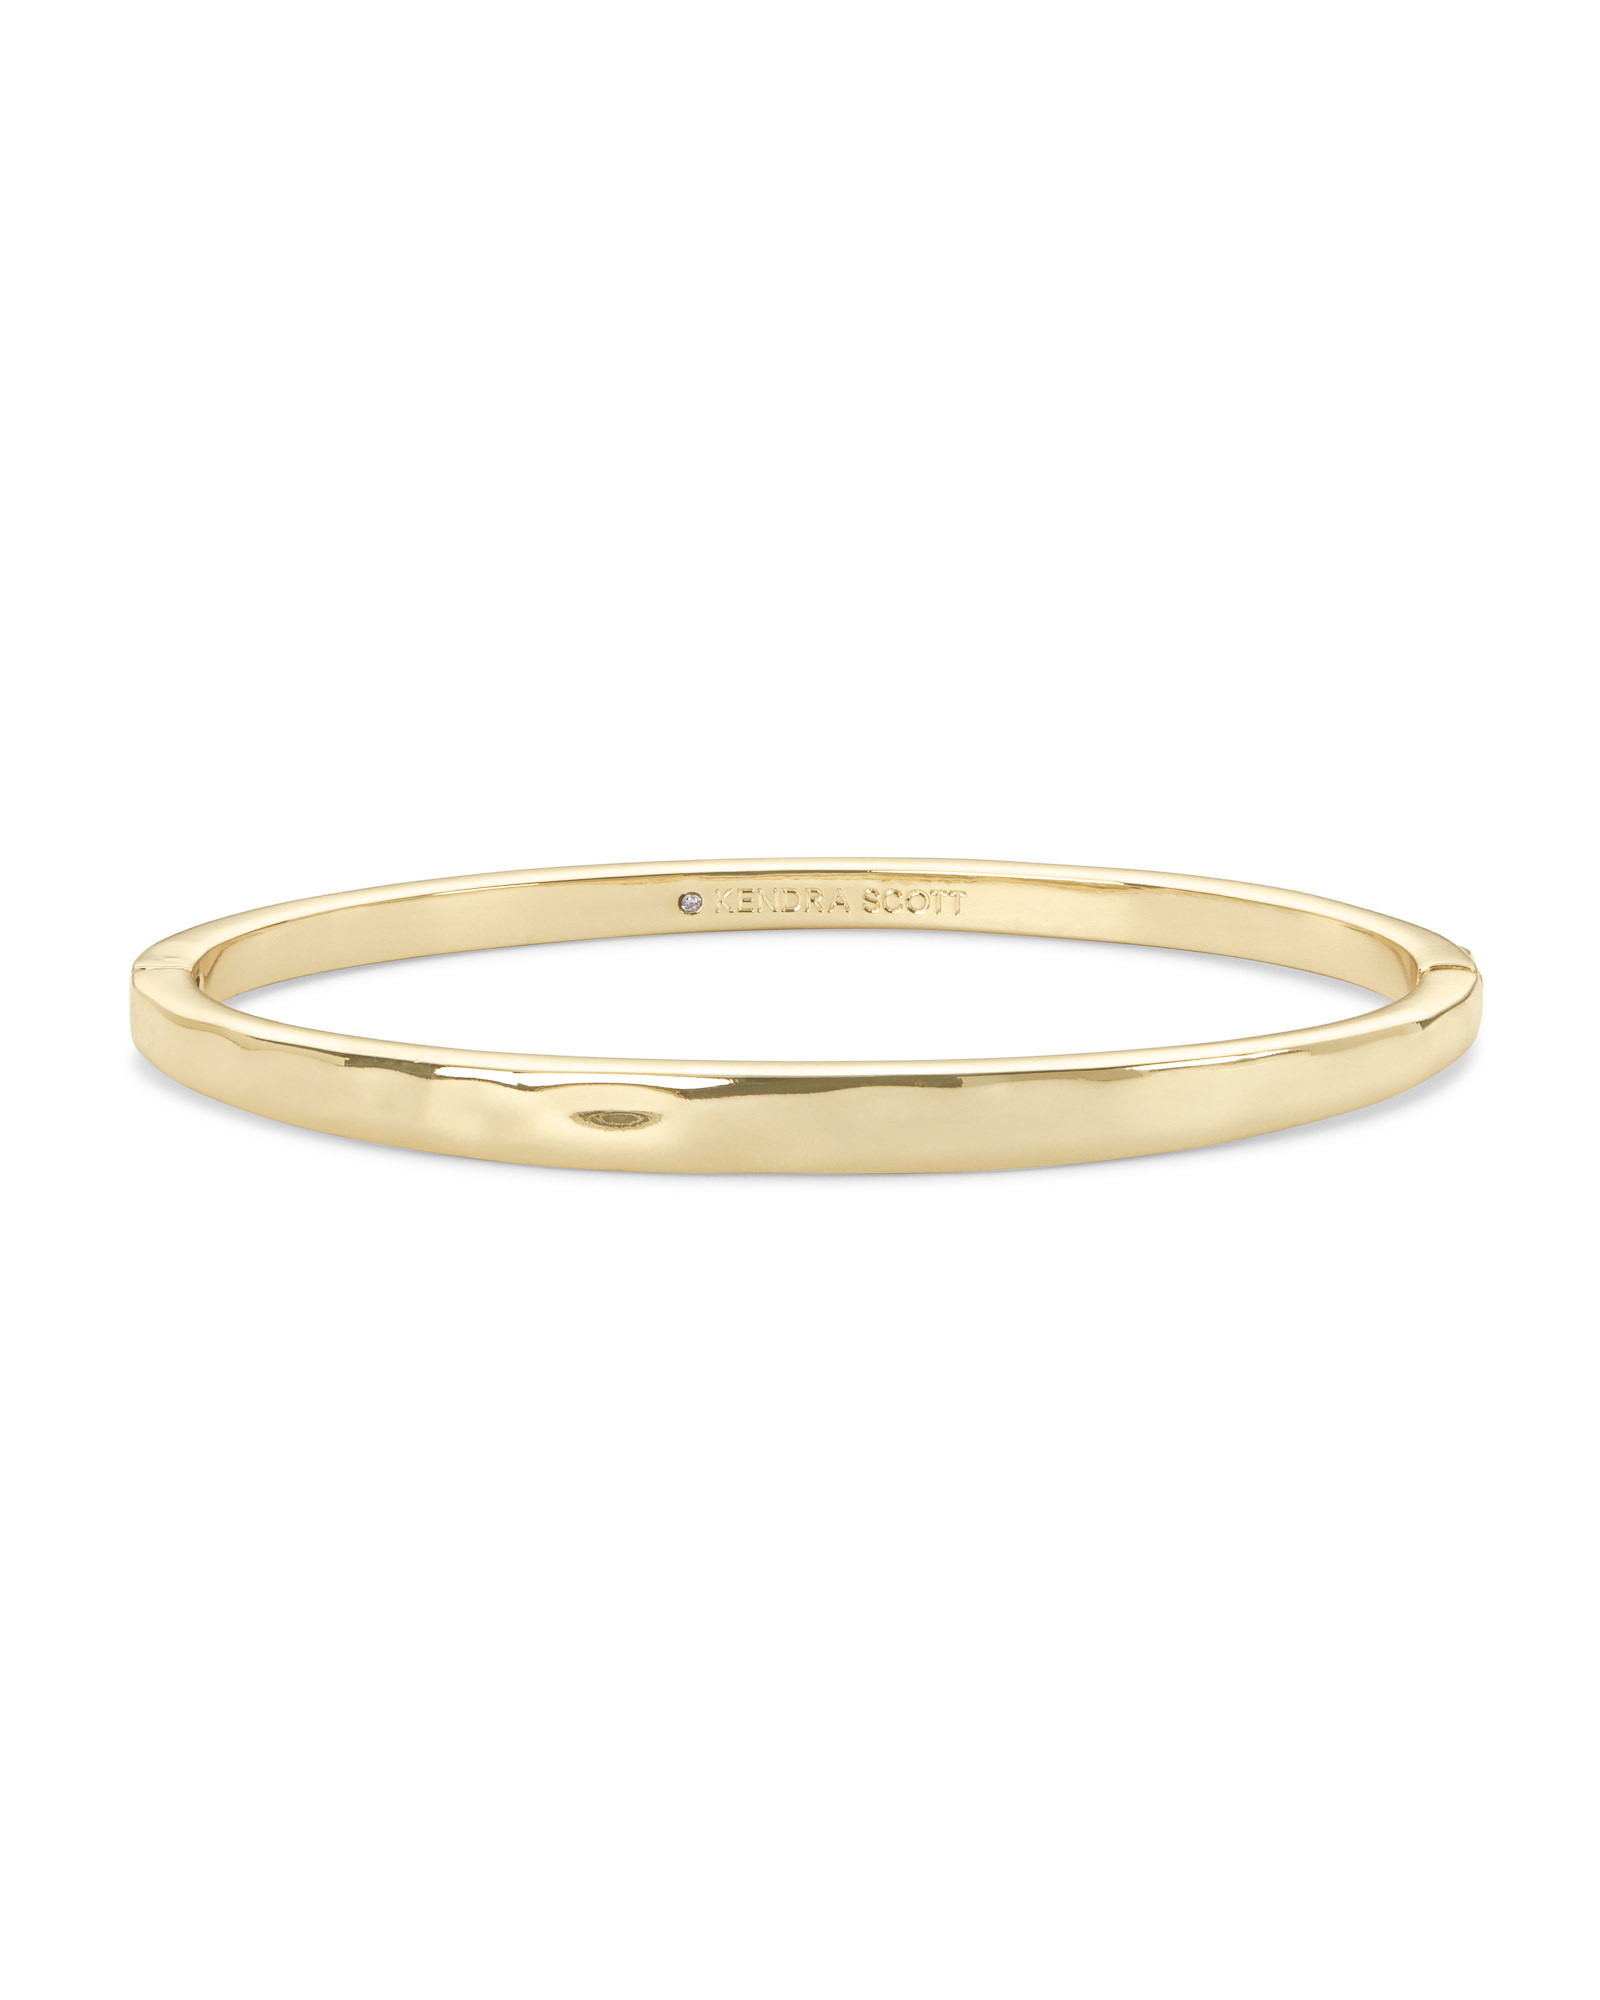 Zorte Bangle Bracelet in Gold